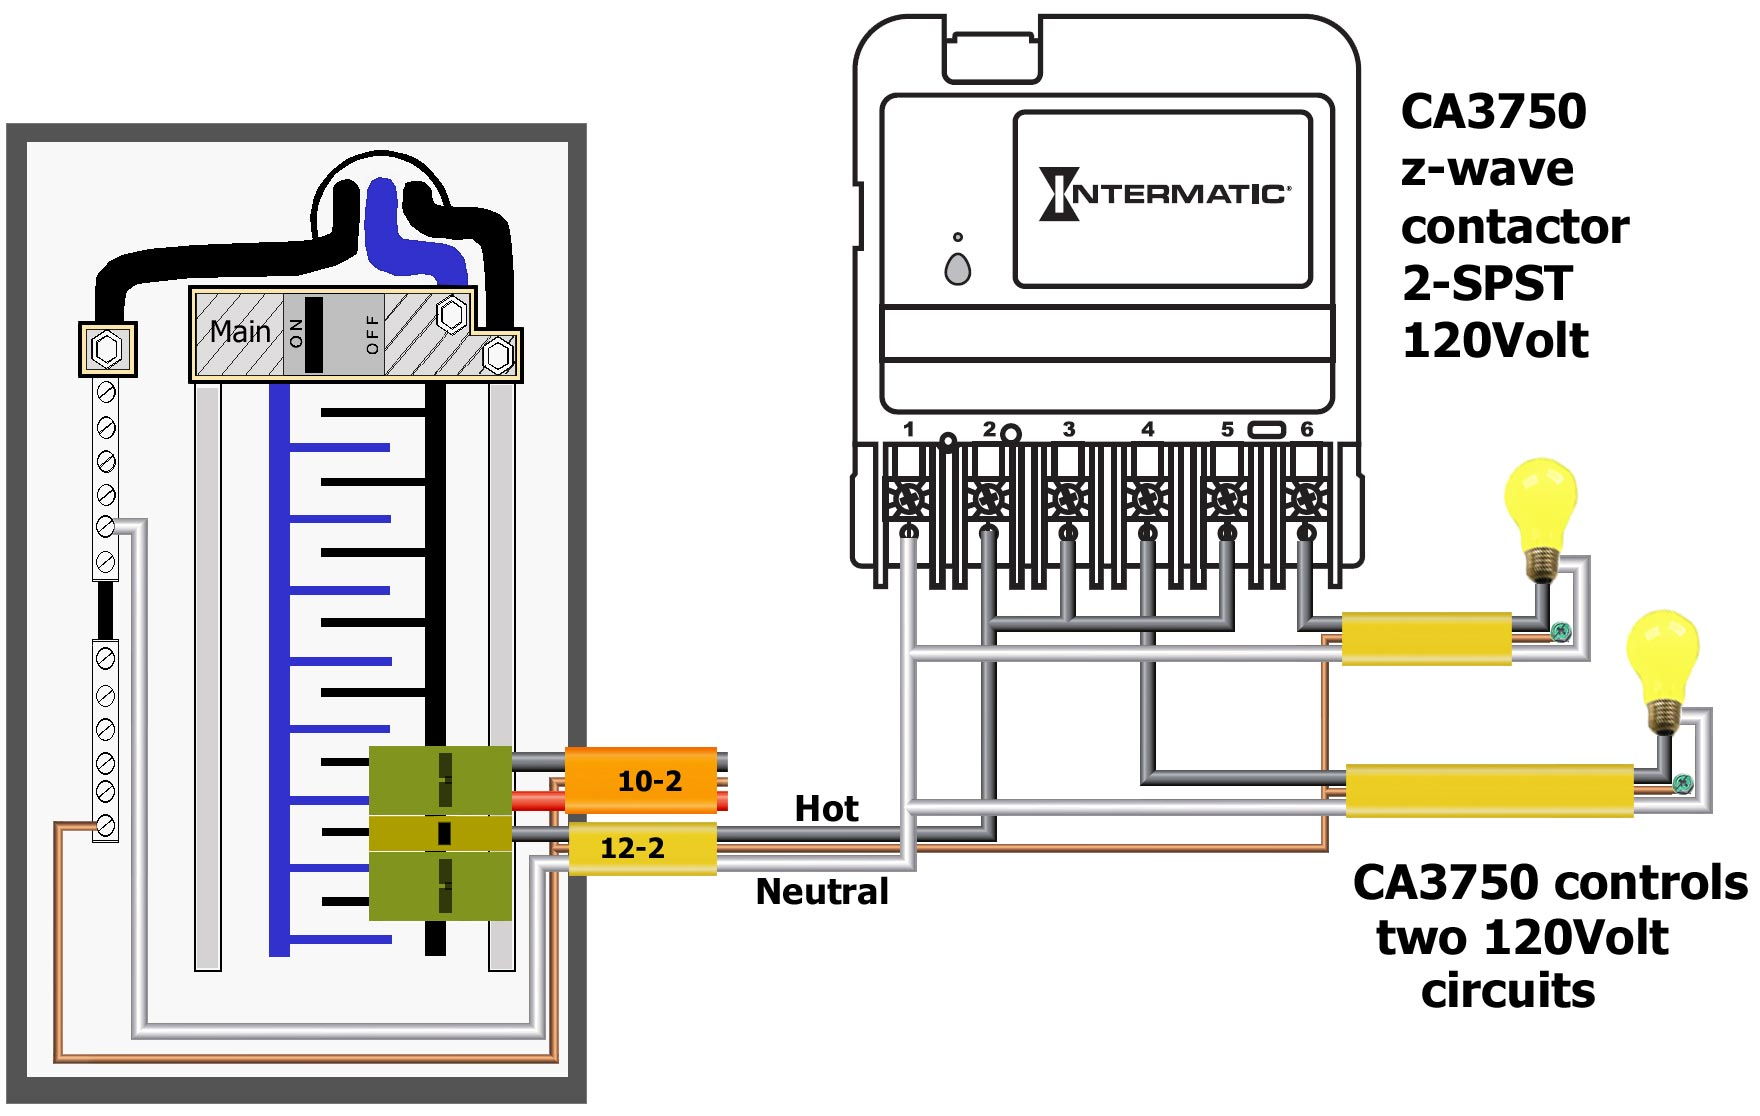 How To Wire Intermatic Ca3750 120 Volt Contactor Wiring Controls Two 120volt Circuits Larger Image